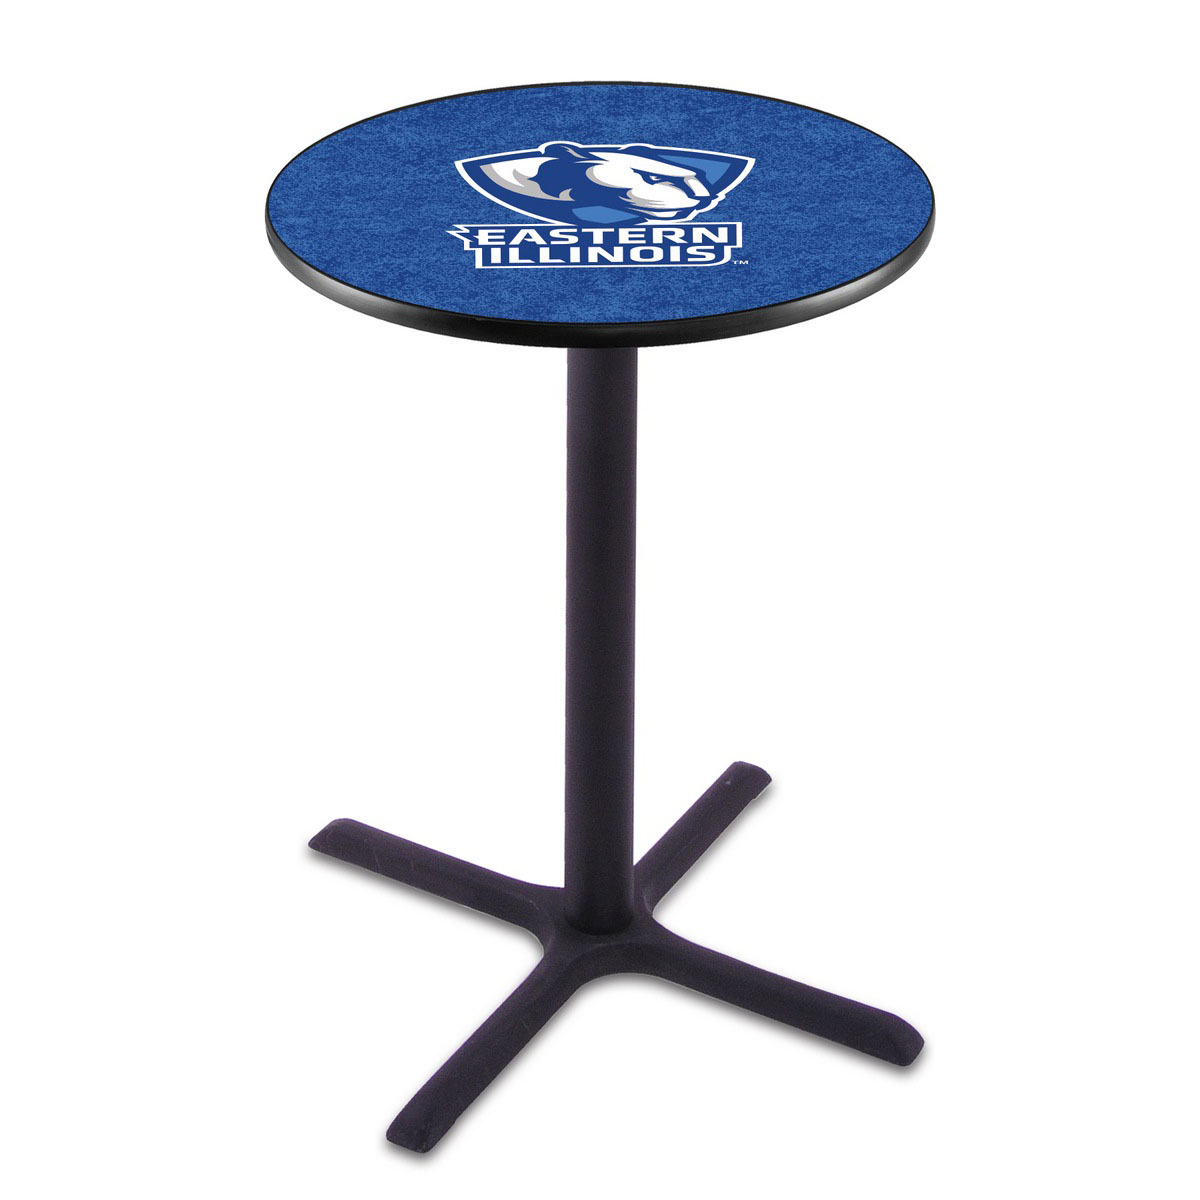 Special Eastern Illinois Wrinkle Pub Table Product Photo